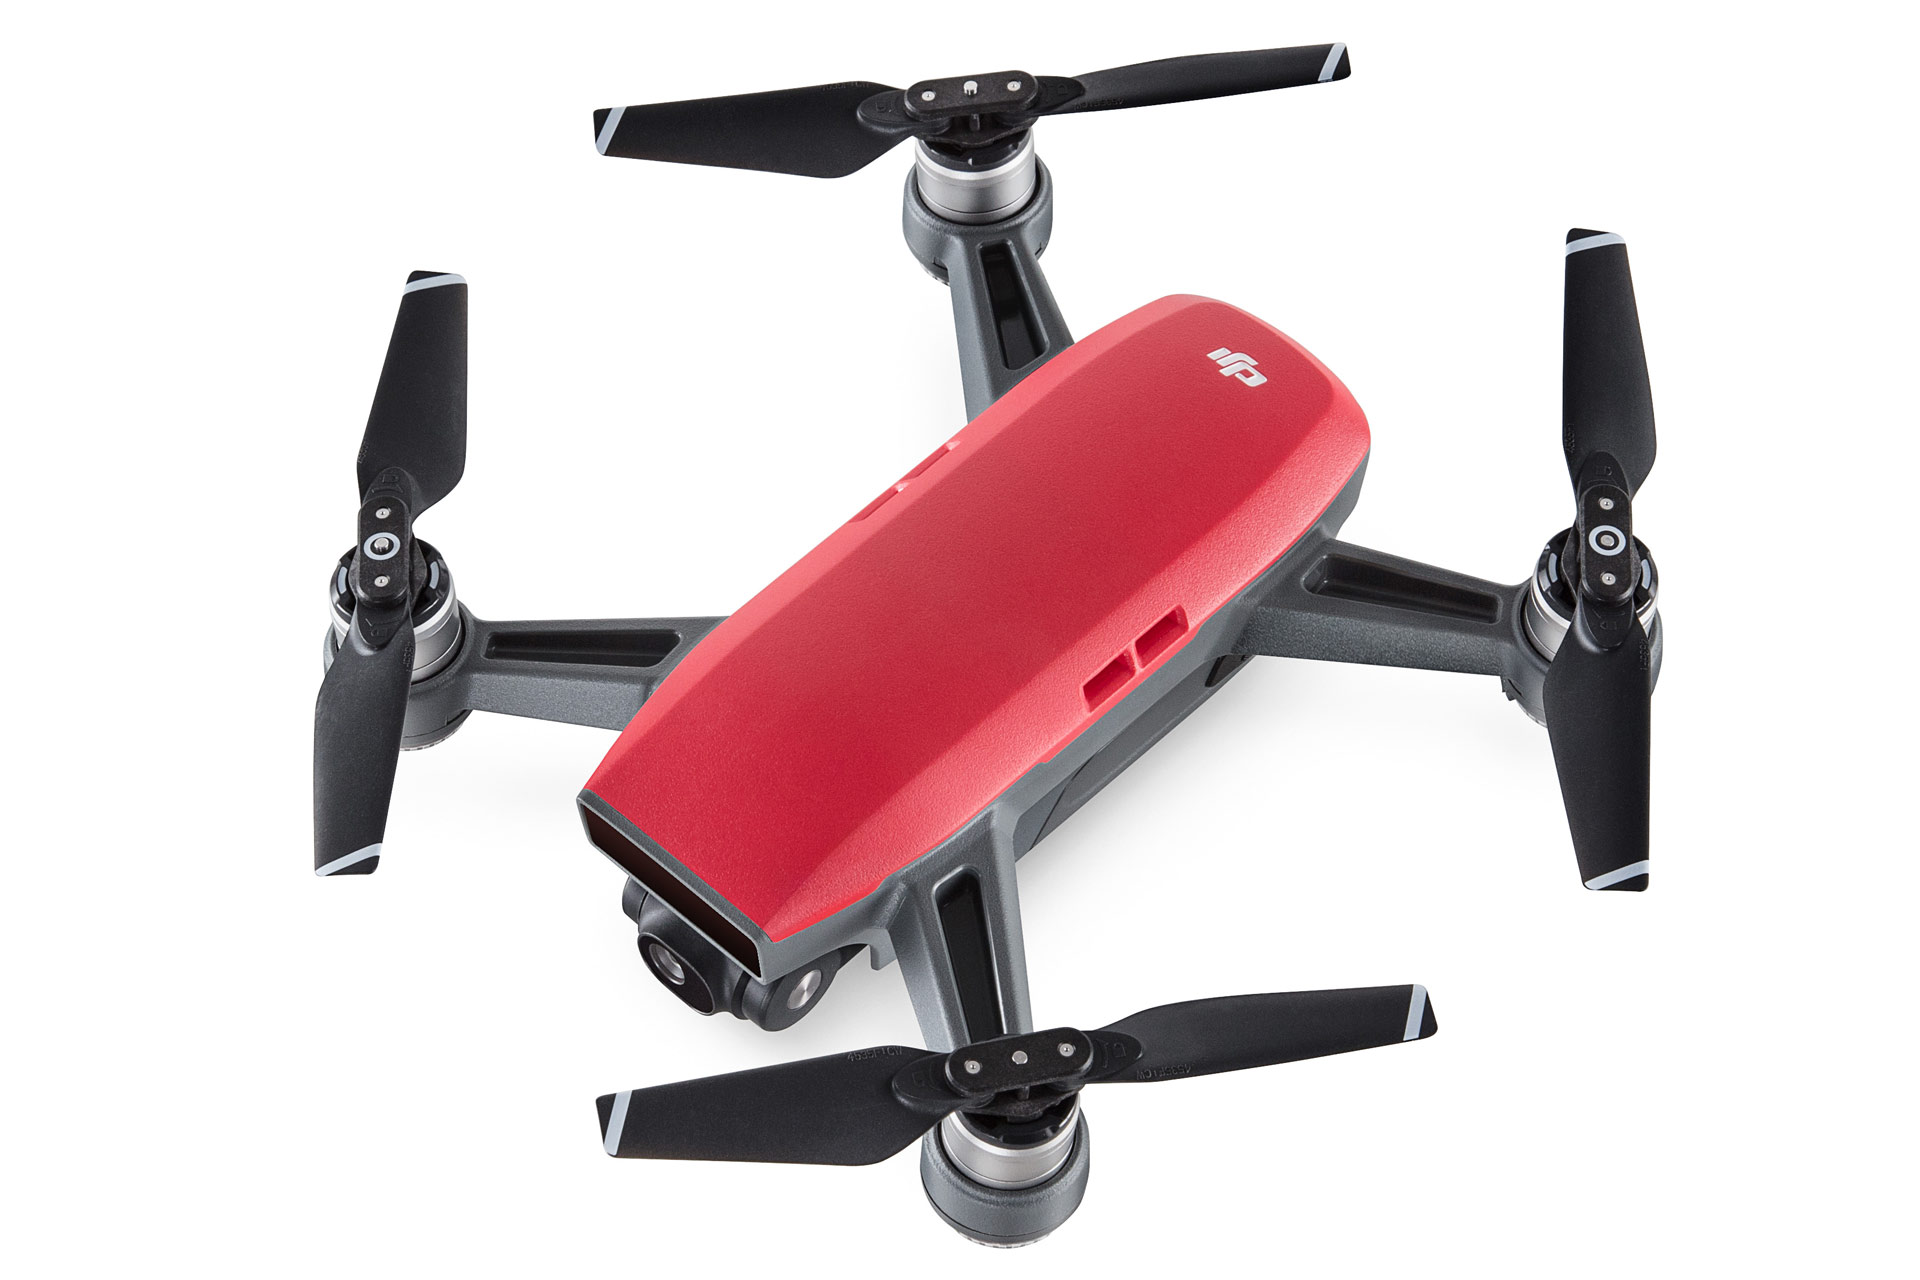 DJI Spark Drone Launched - Control it Just by Moving Your